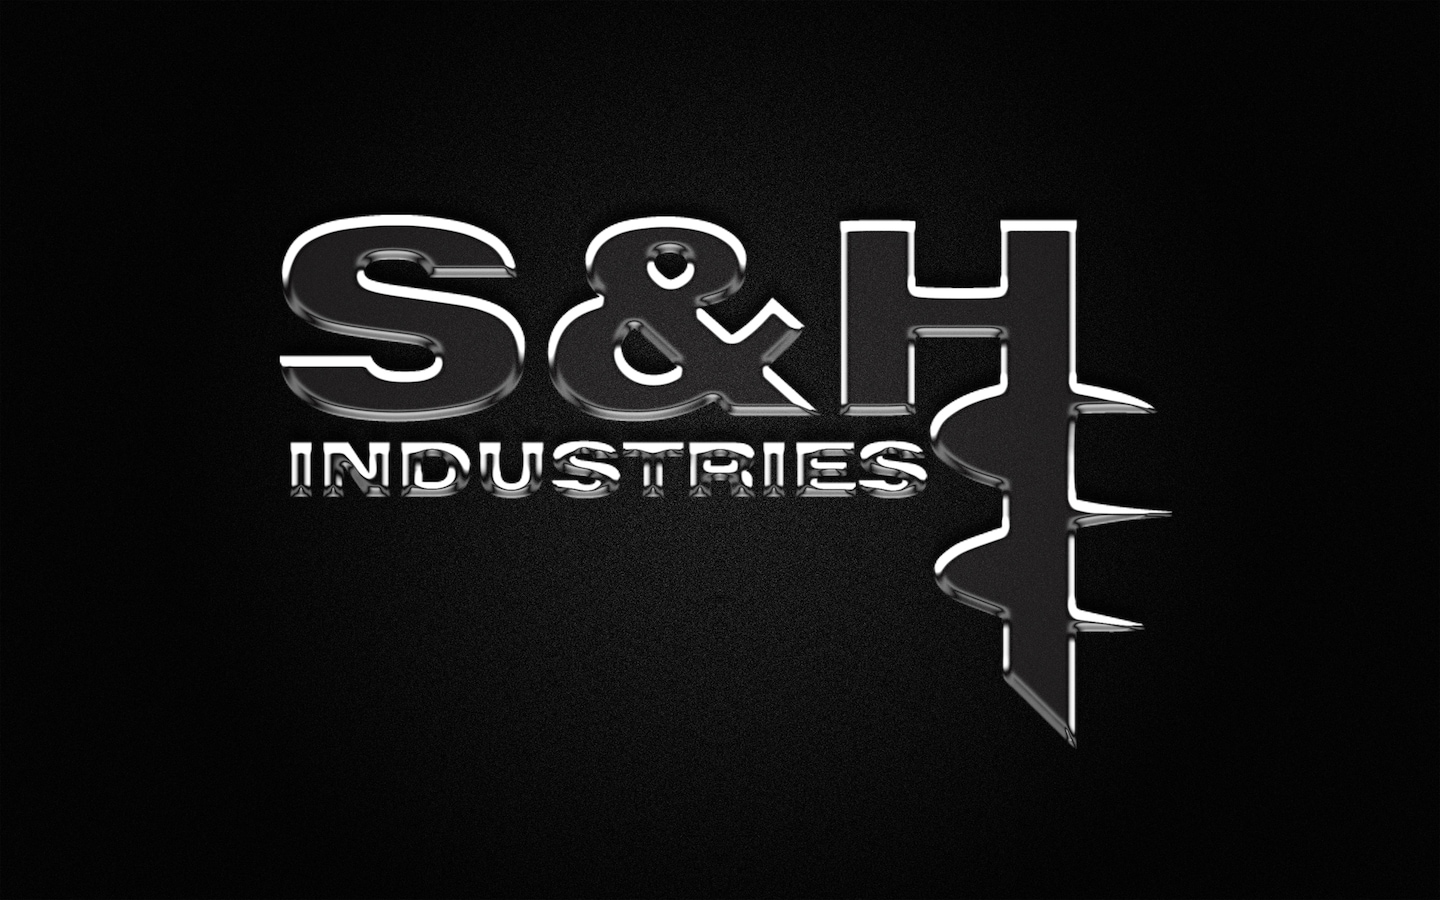 S & H Industries LLC